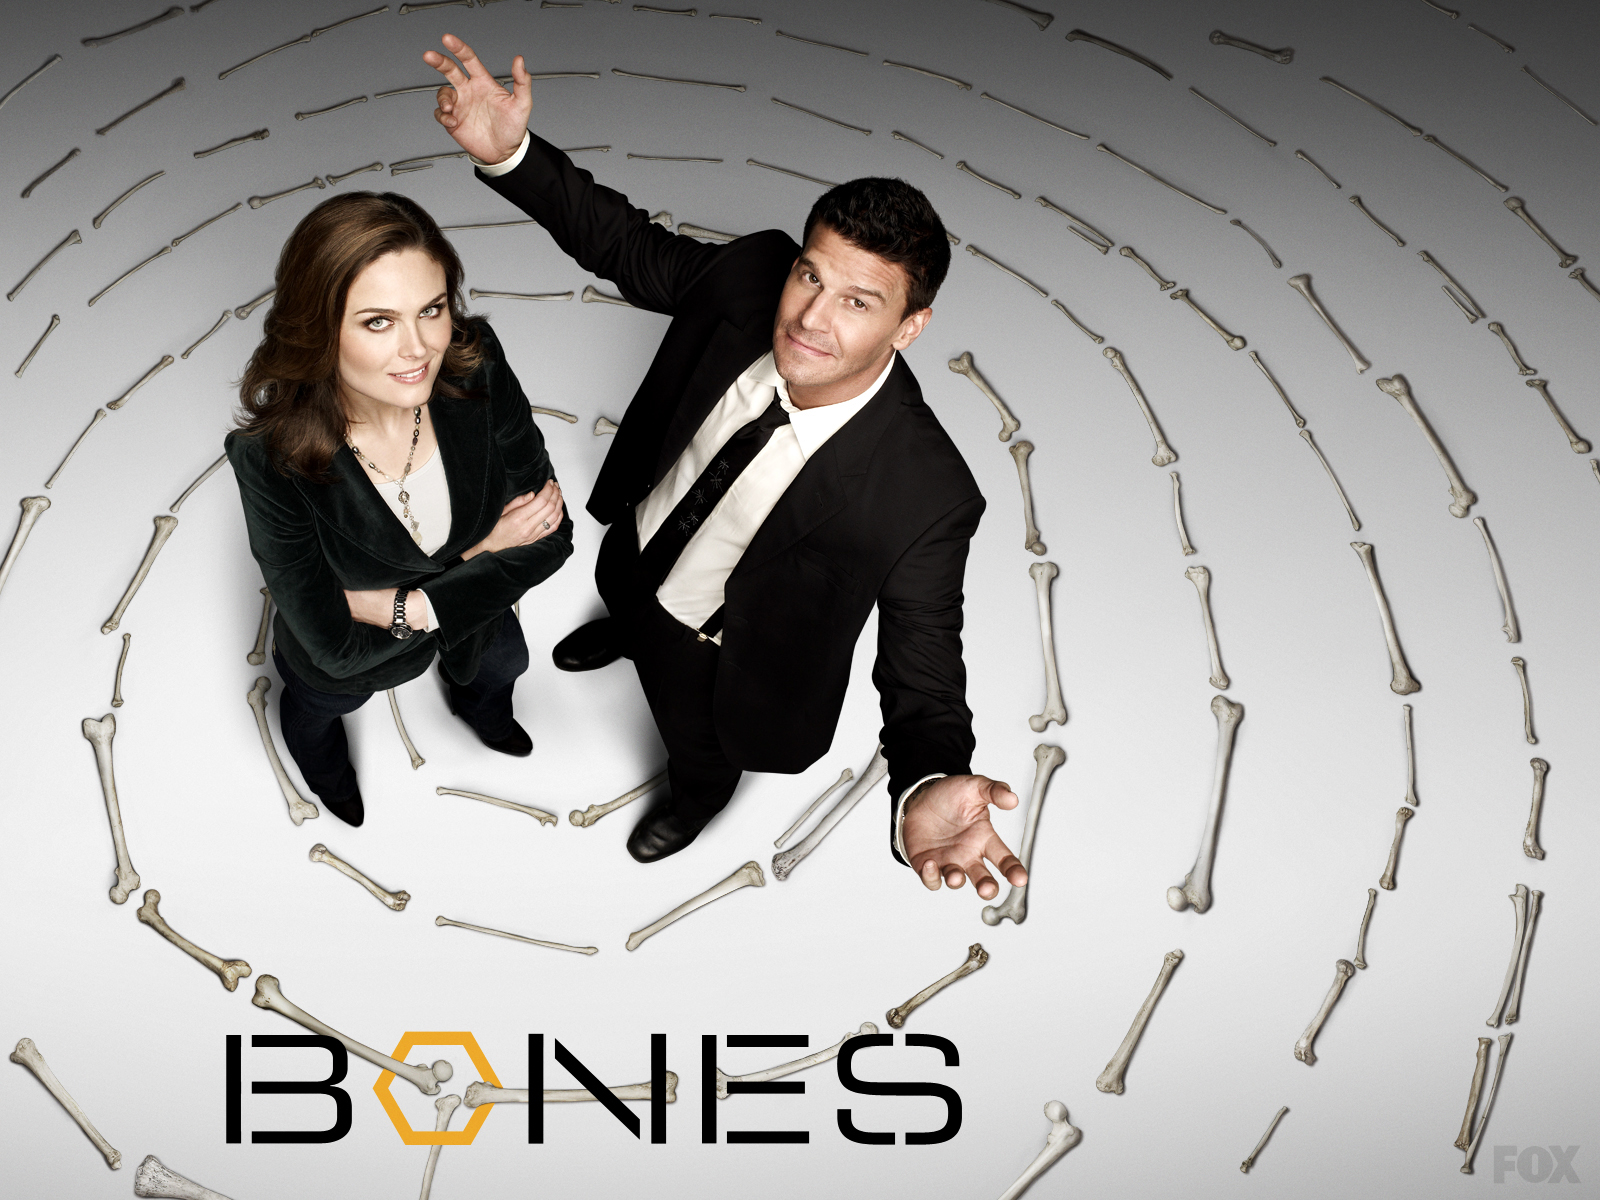 Final Season of 'Bones' Delayed Until Early 2017